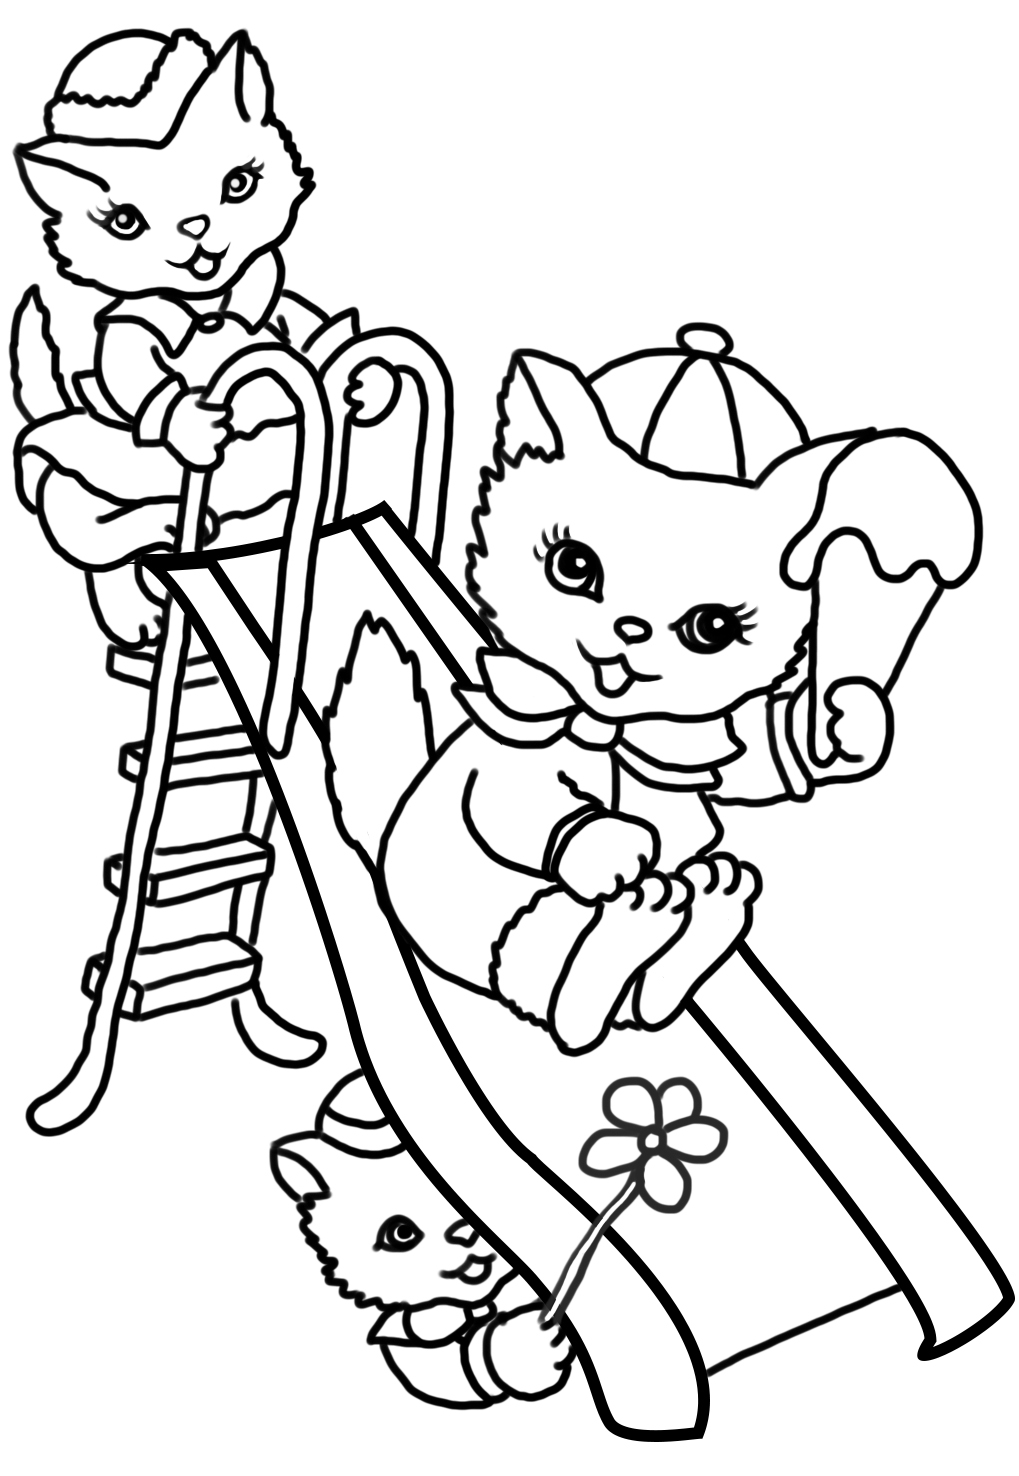 summertime coloring pages summer coloring pages to print coloring pages summertime